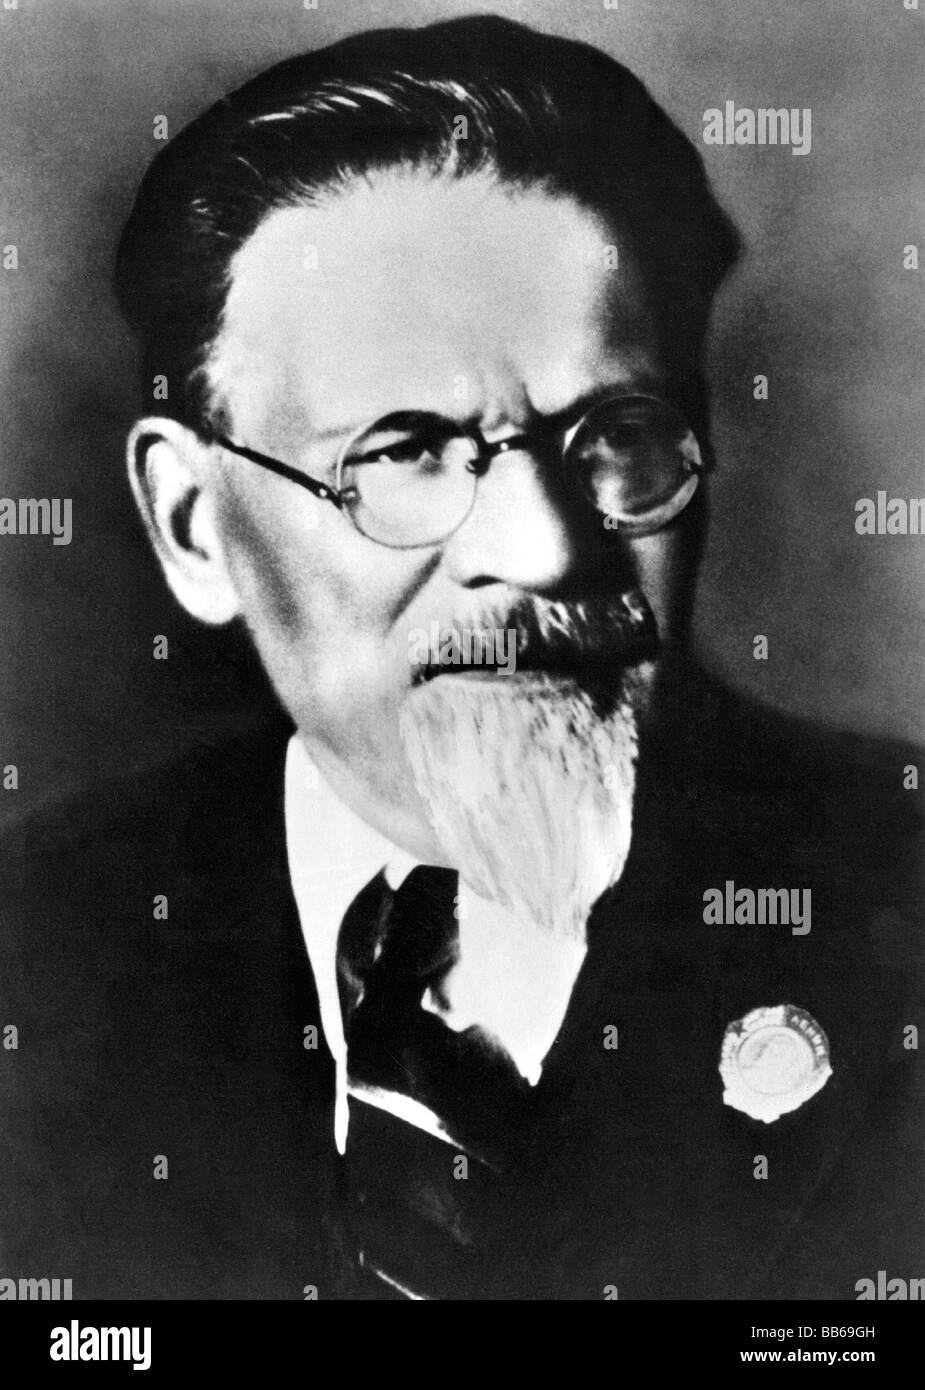 Kalinin, Mikhail Ivanovich, 19.11.1875 - 3.6.1946, Soviet politician, portrait, Additional-Rights-Clearances-NA - Stock Image